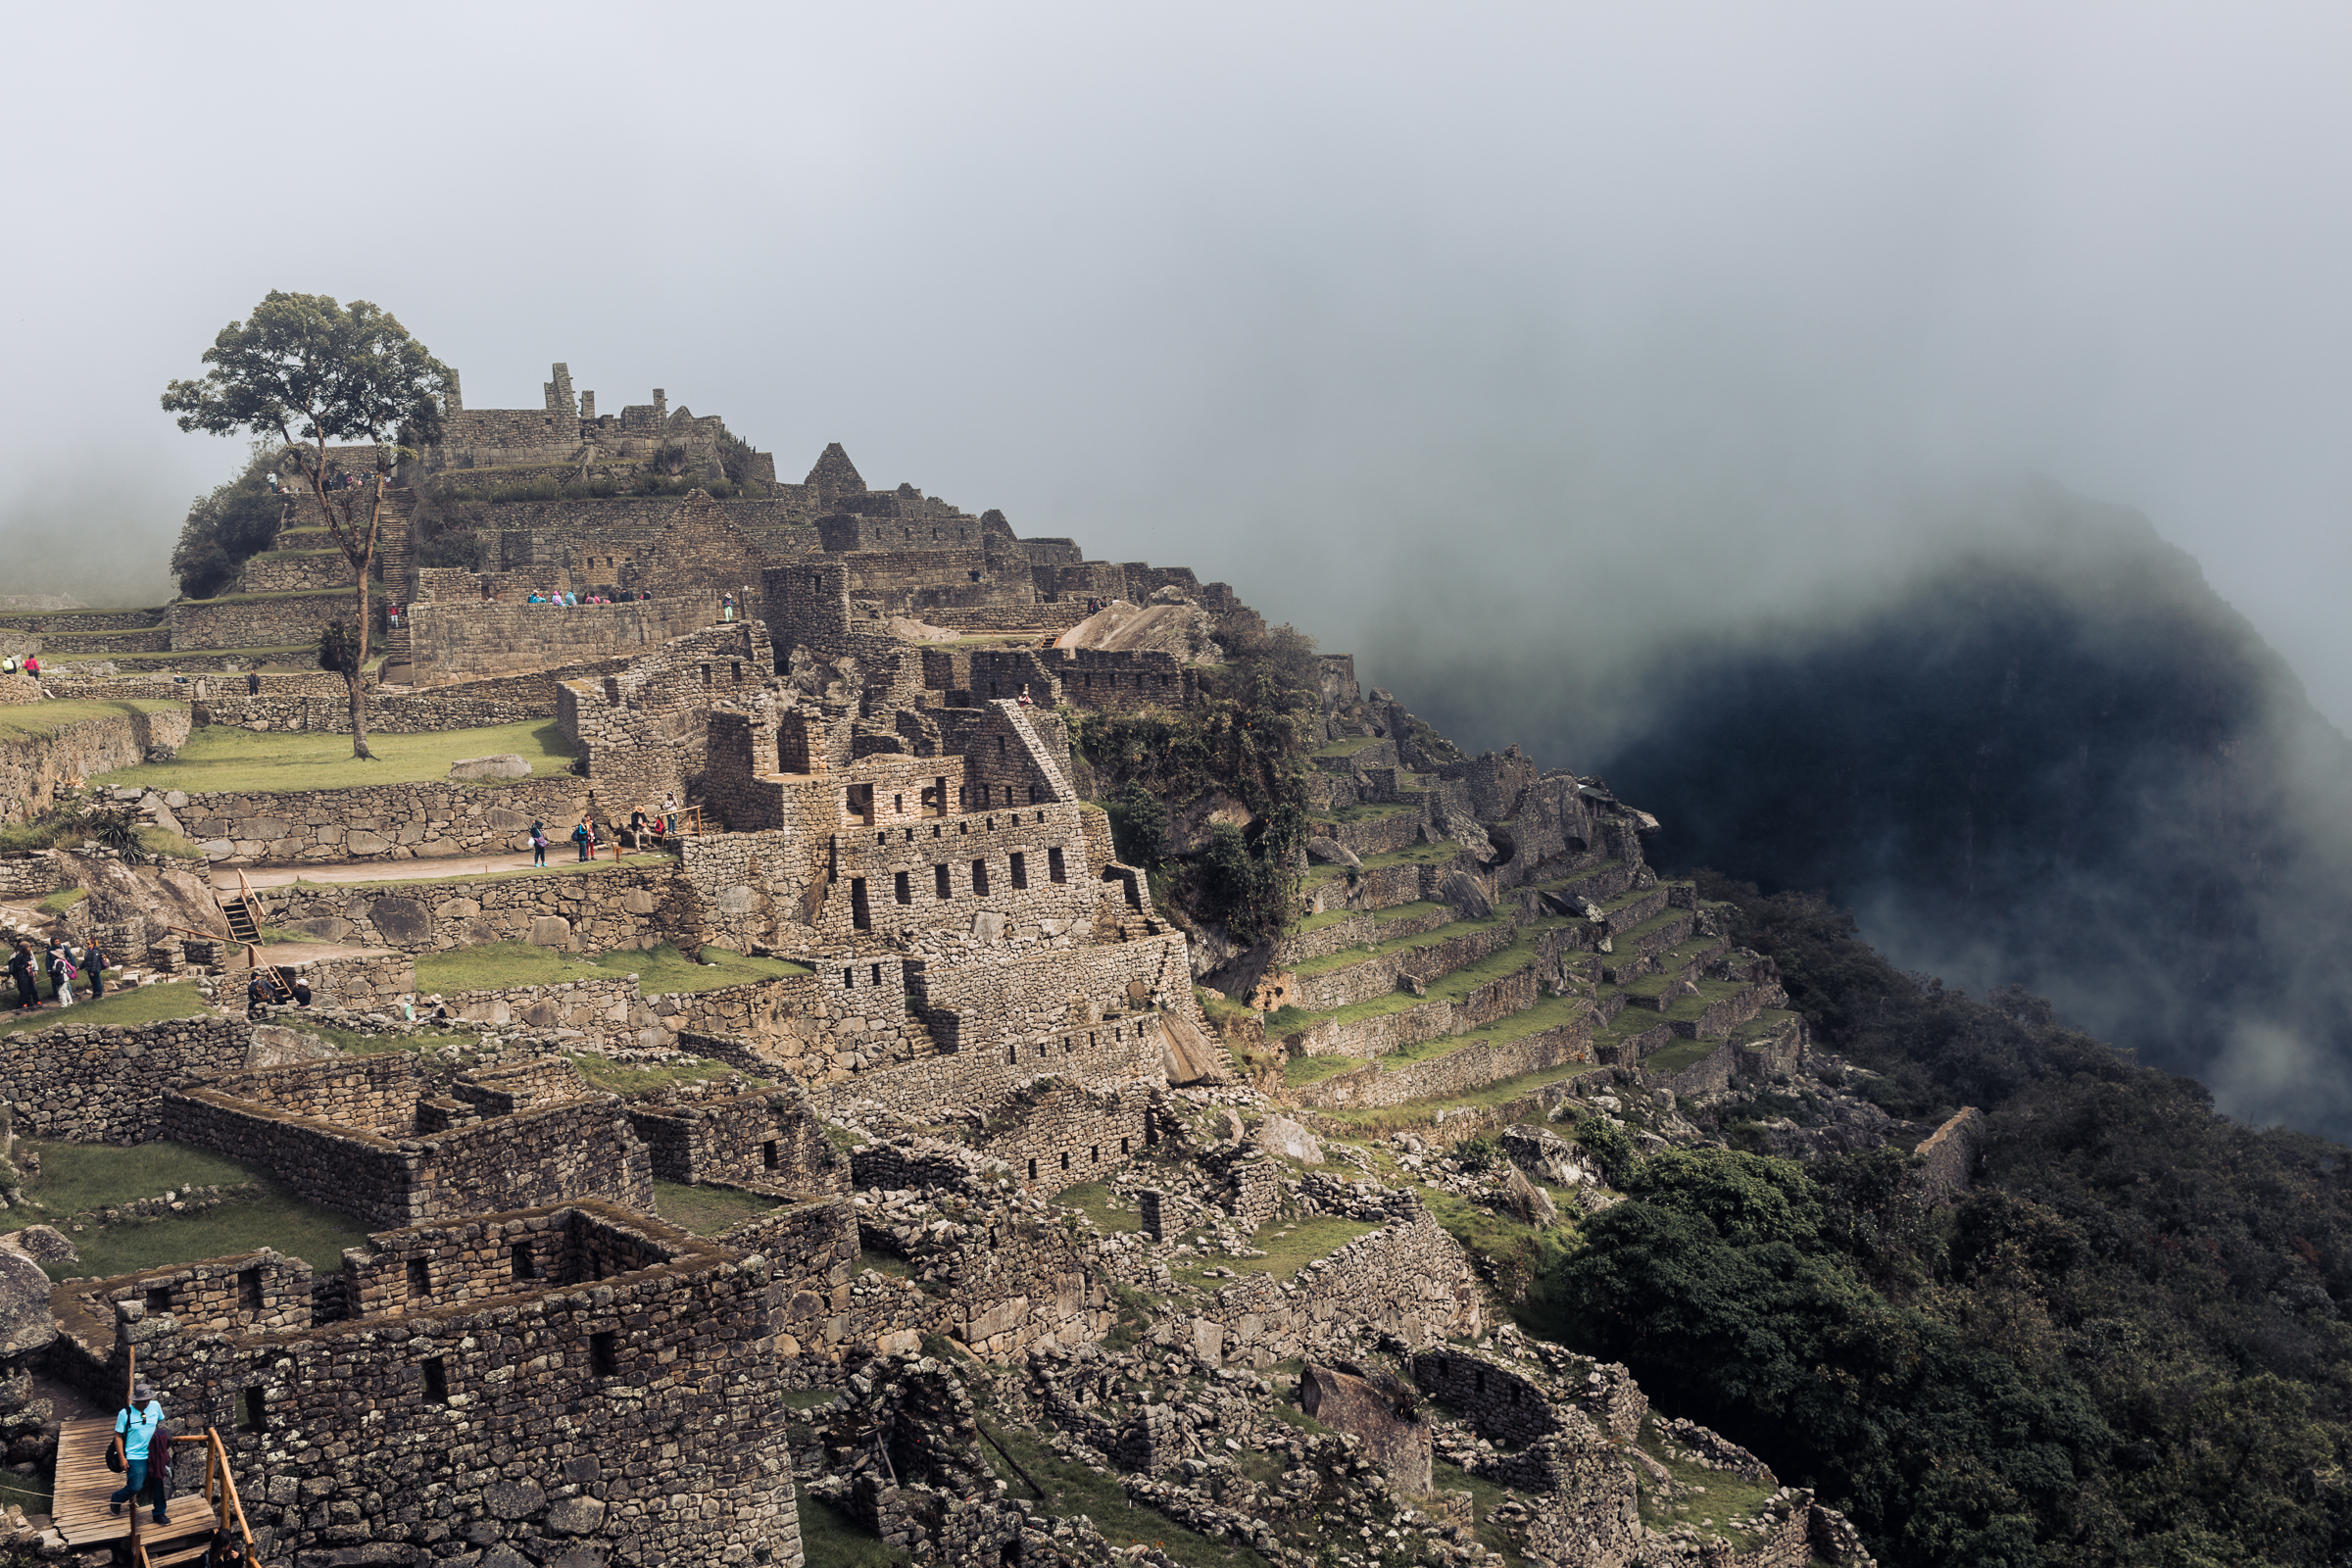 Peru - Honeymoon - Cuzco, Peru - K. Stoddard Photography & Fine Art (71 of 83).jpg